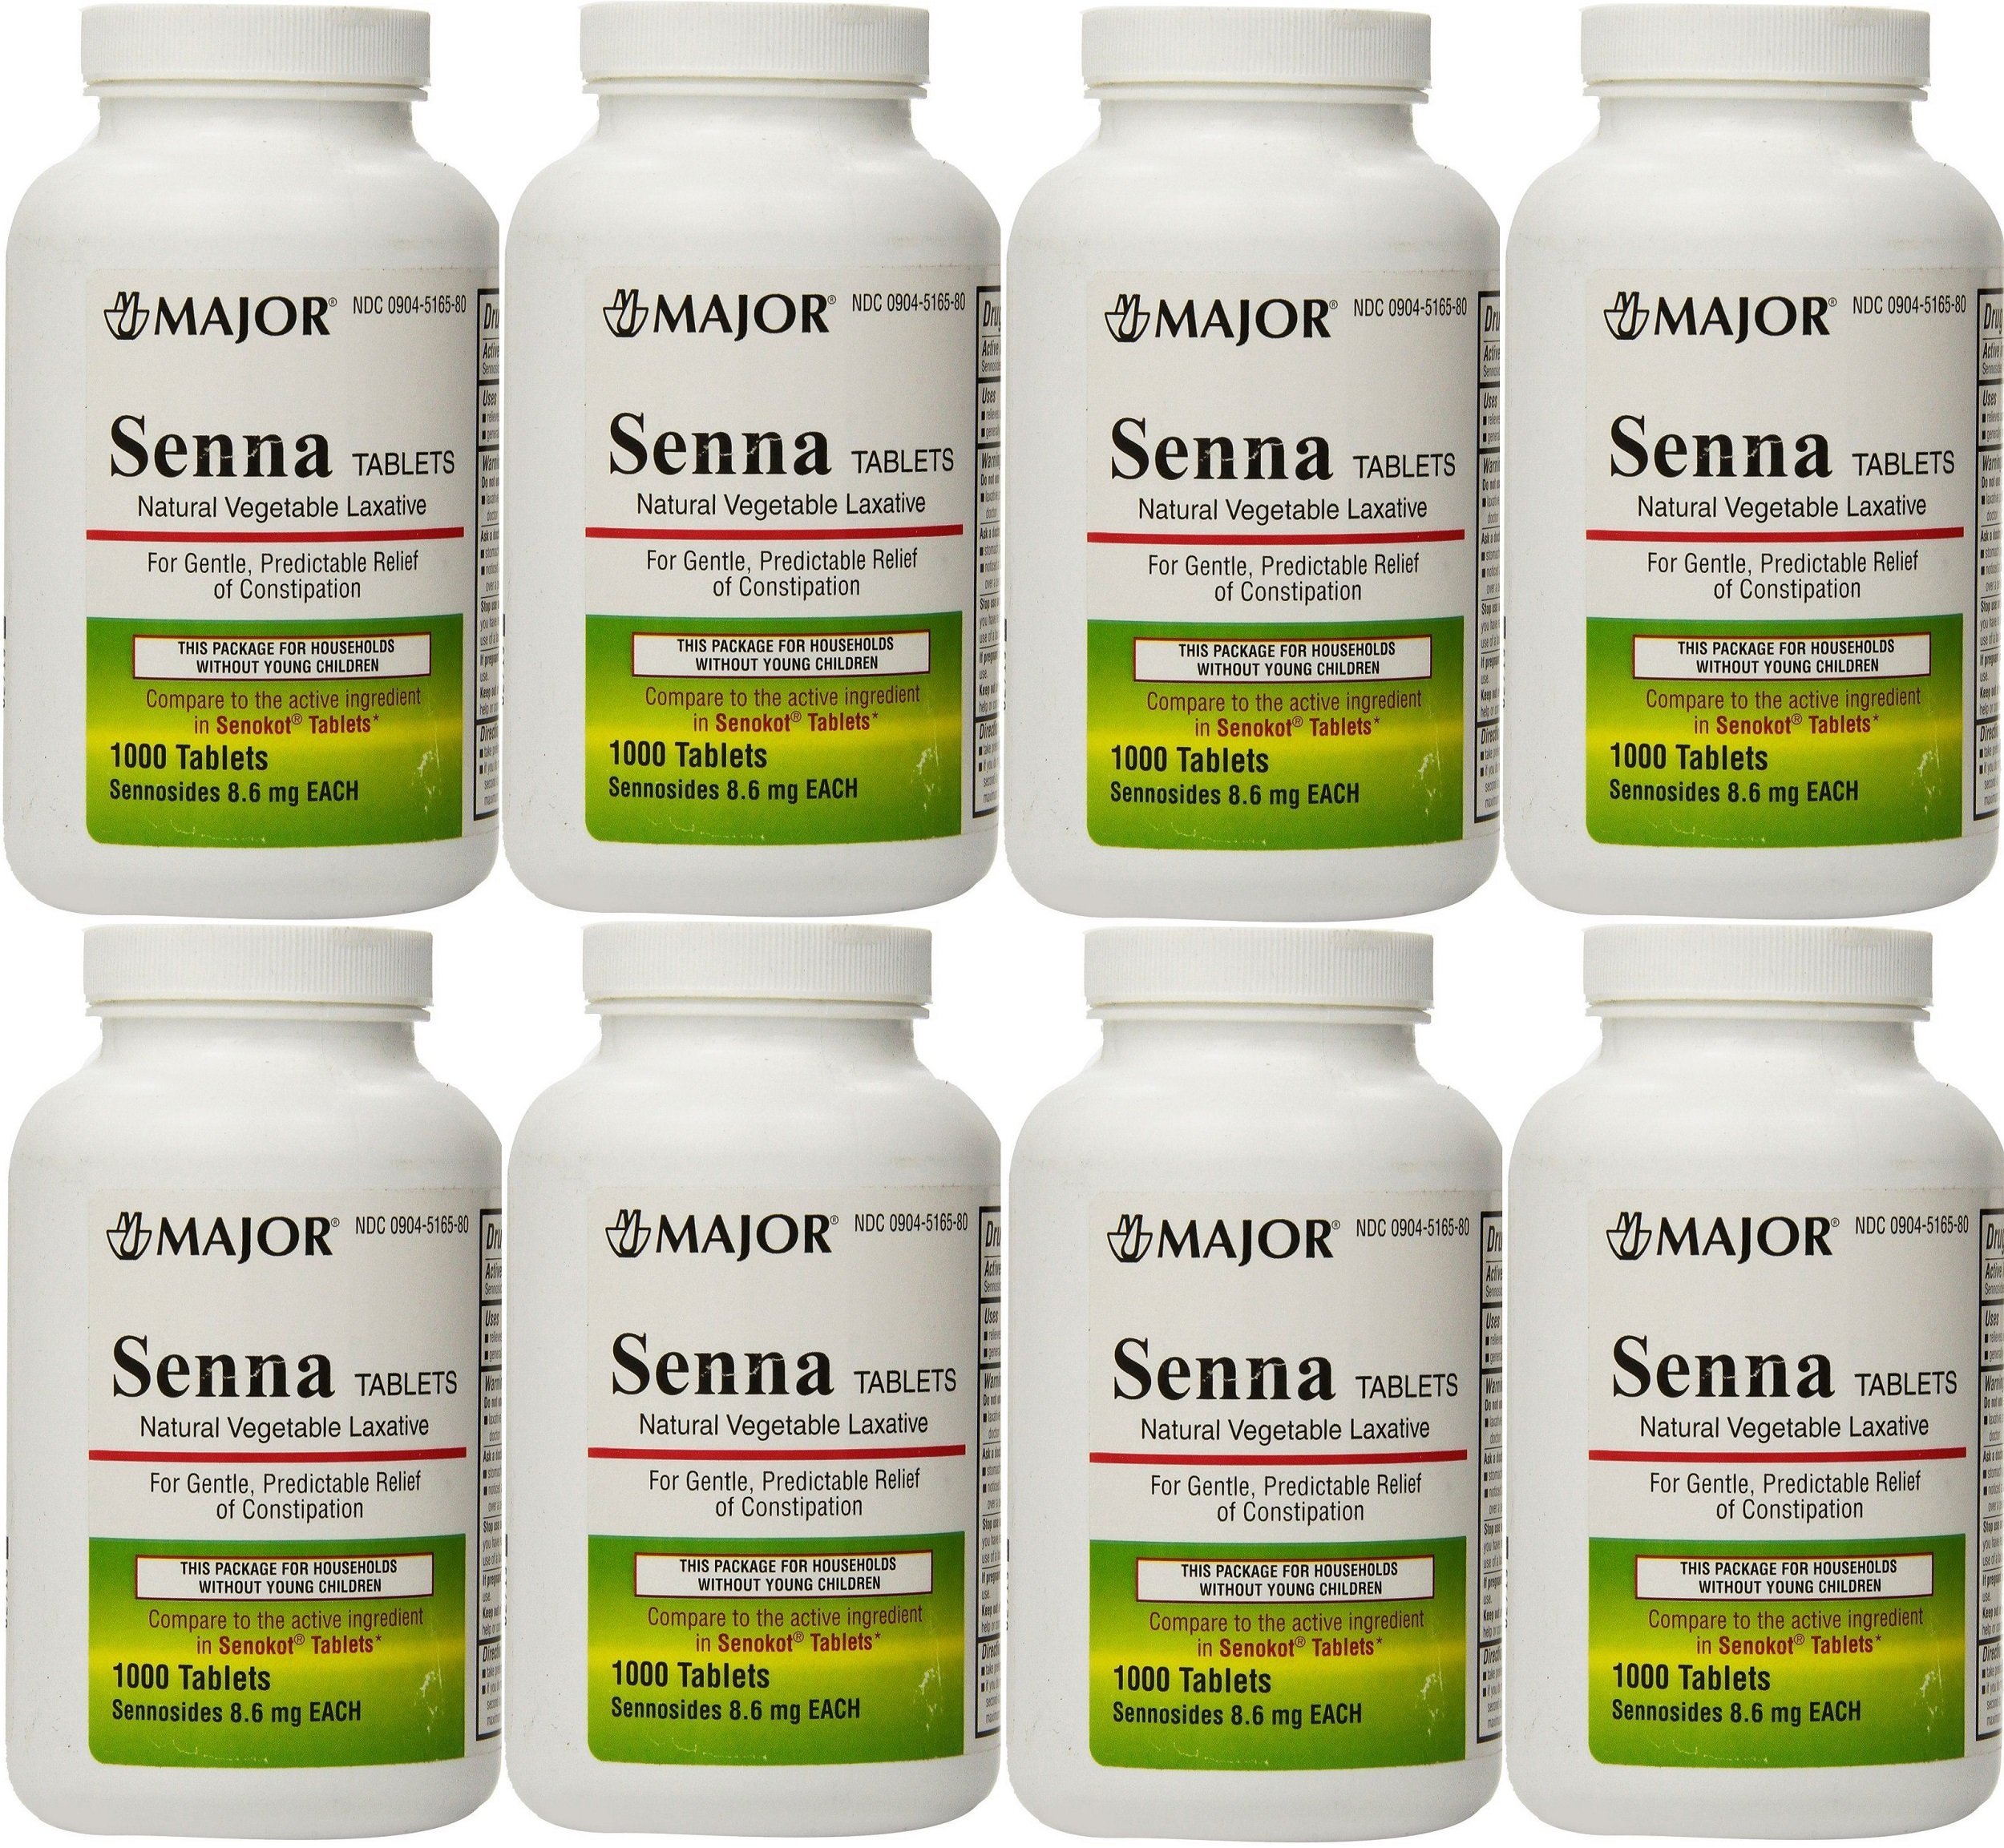 Senna 8.6 mg Generic for Senokot Natural Vegetable Laxative 1000 Tablets per Bottle Pack Of 8 Bottles by Major Pharmaceuticals